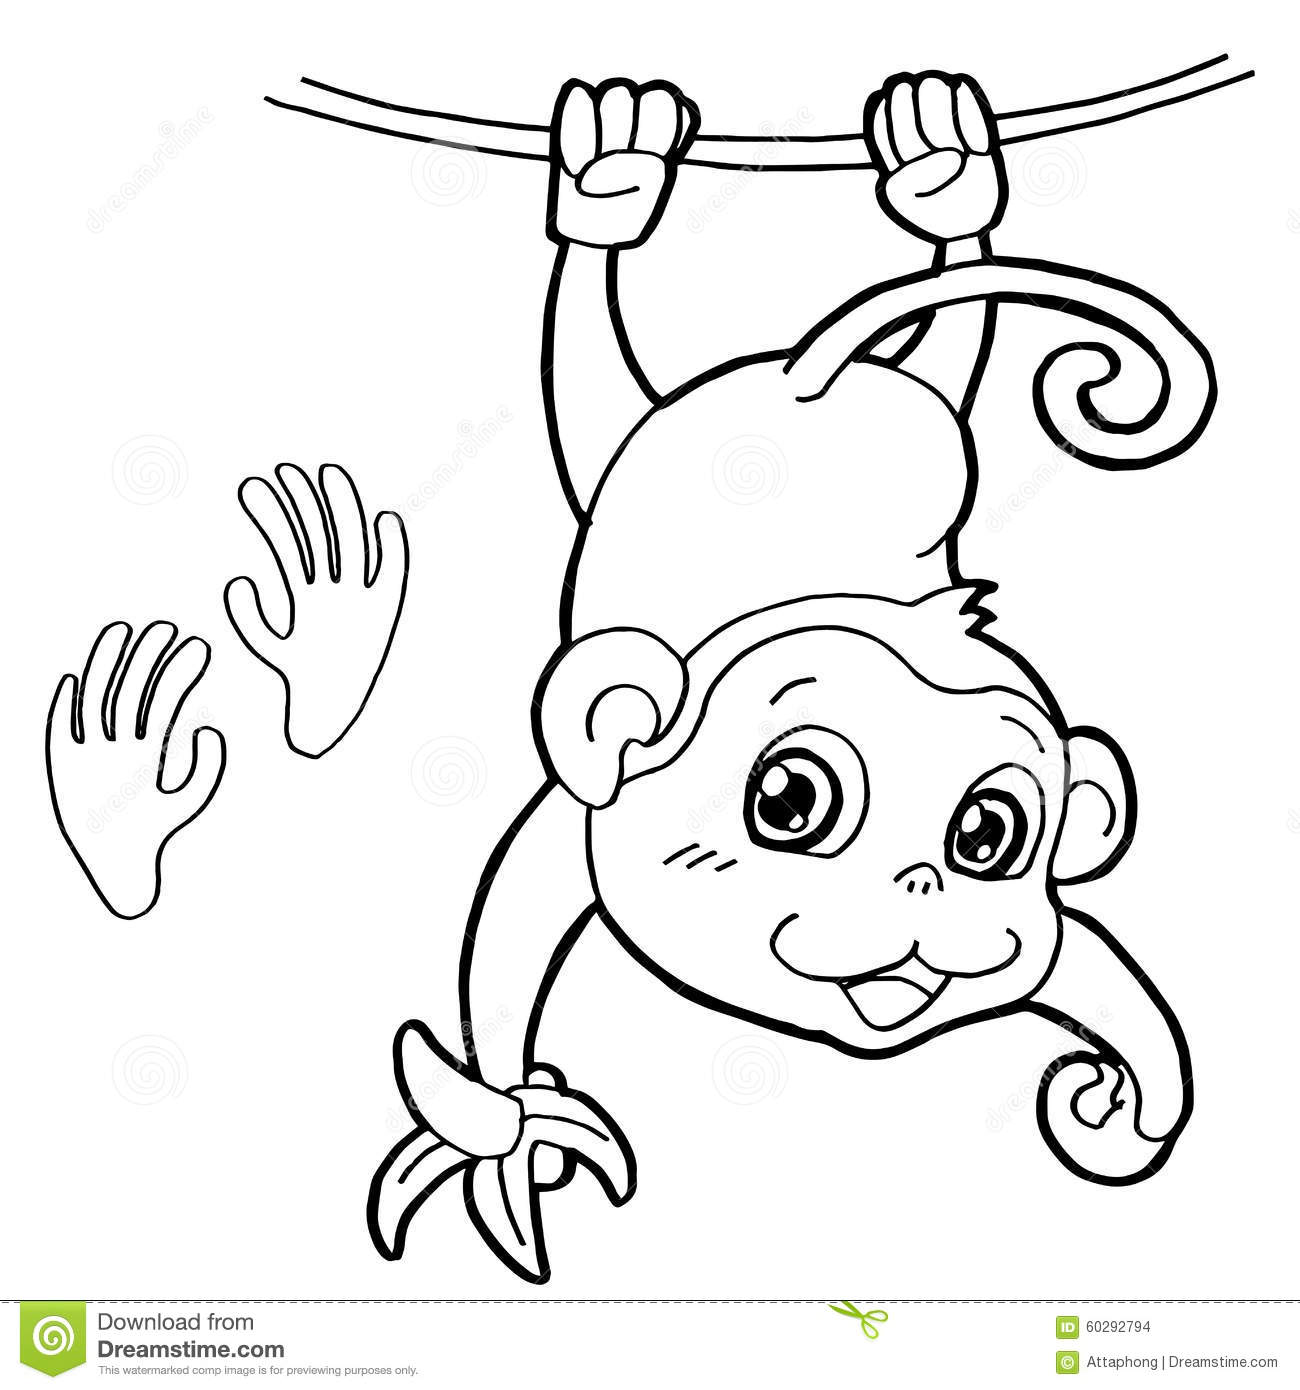 Clip Art Paw Print Coloring Page monkey with paw print coloring page vector stock image vector